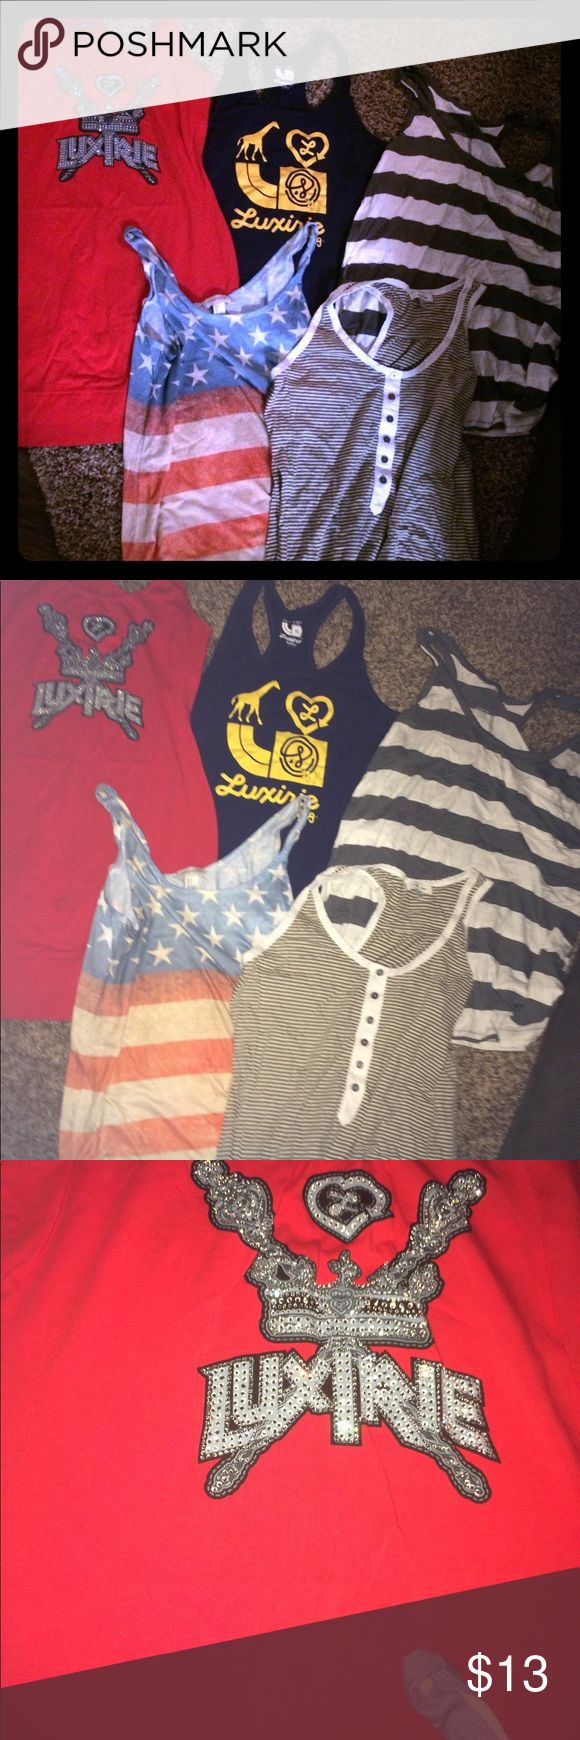 Best 25 old american flag ideas on pinterest old canadian flag 5 for 1 lot of tank tops luxire old navy f21 buycottarizona